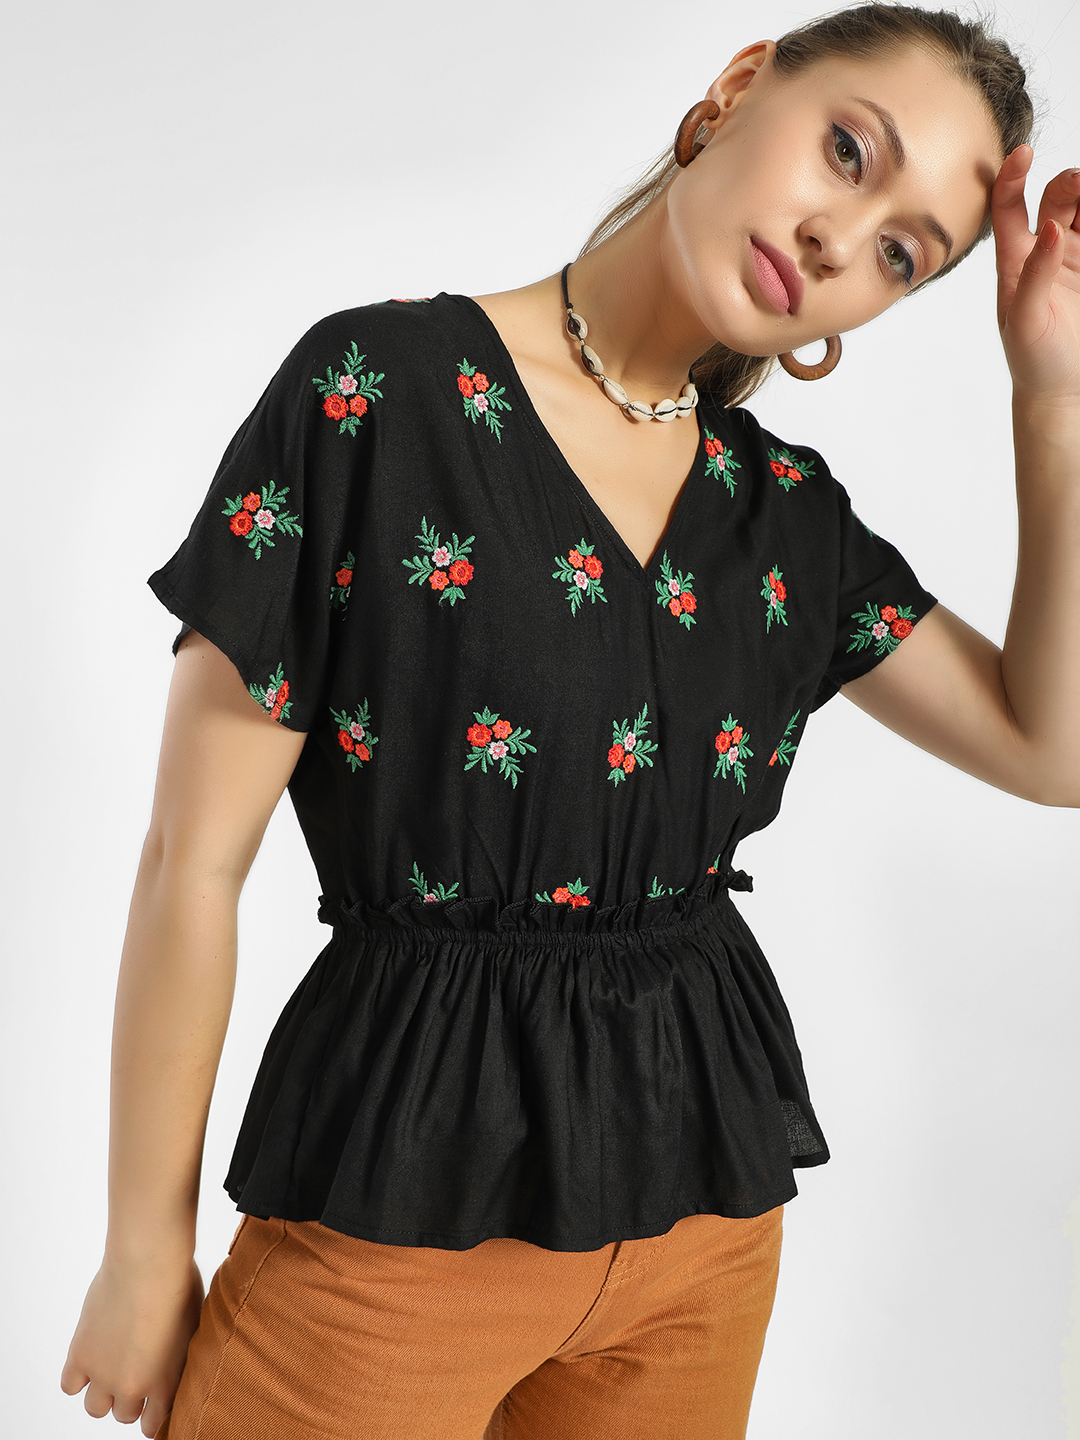 Rena Love Black Floral Embroidered Peplum Blouse 1